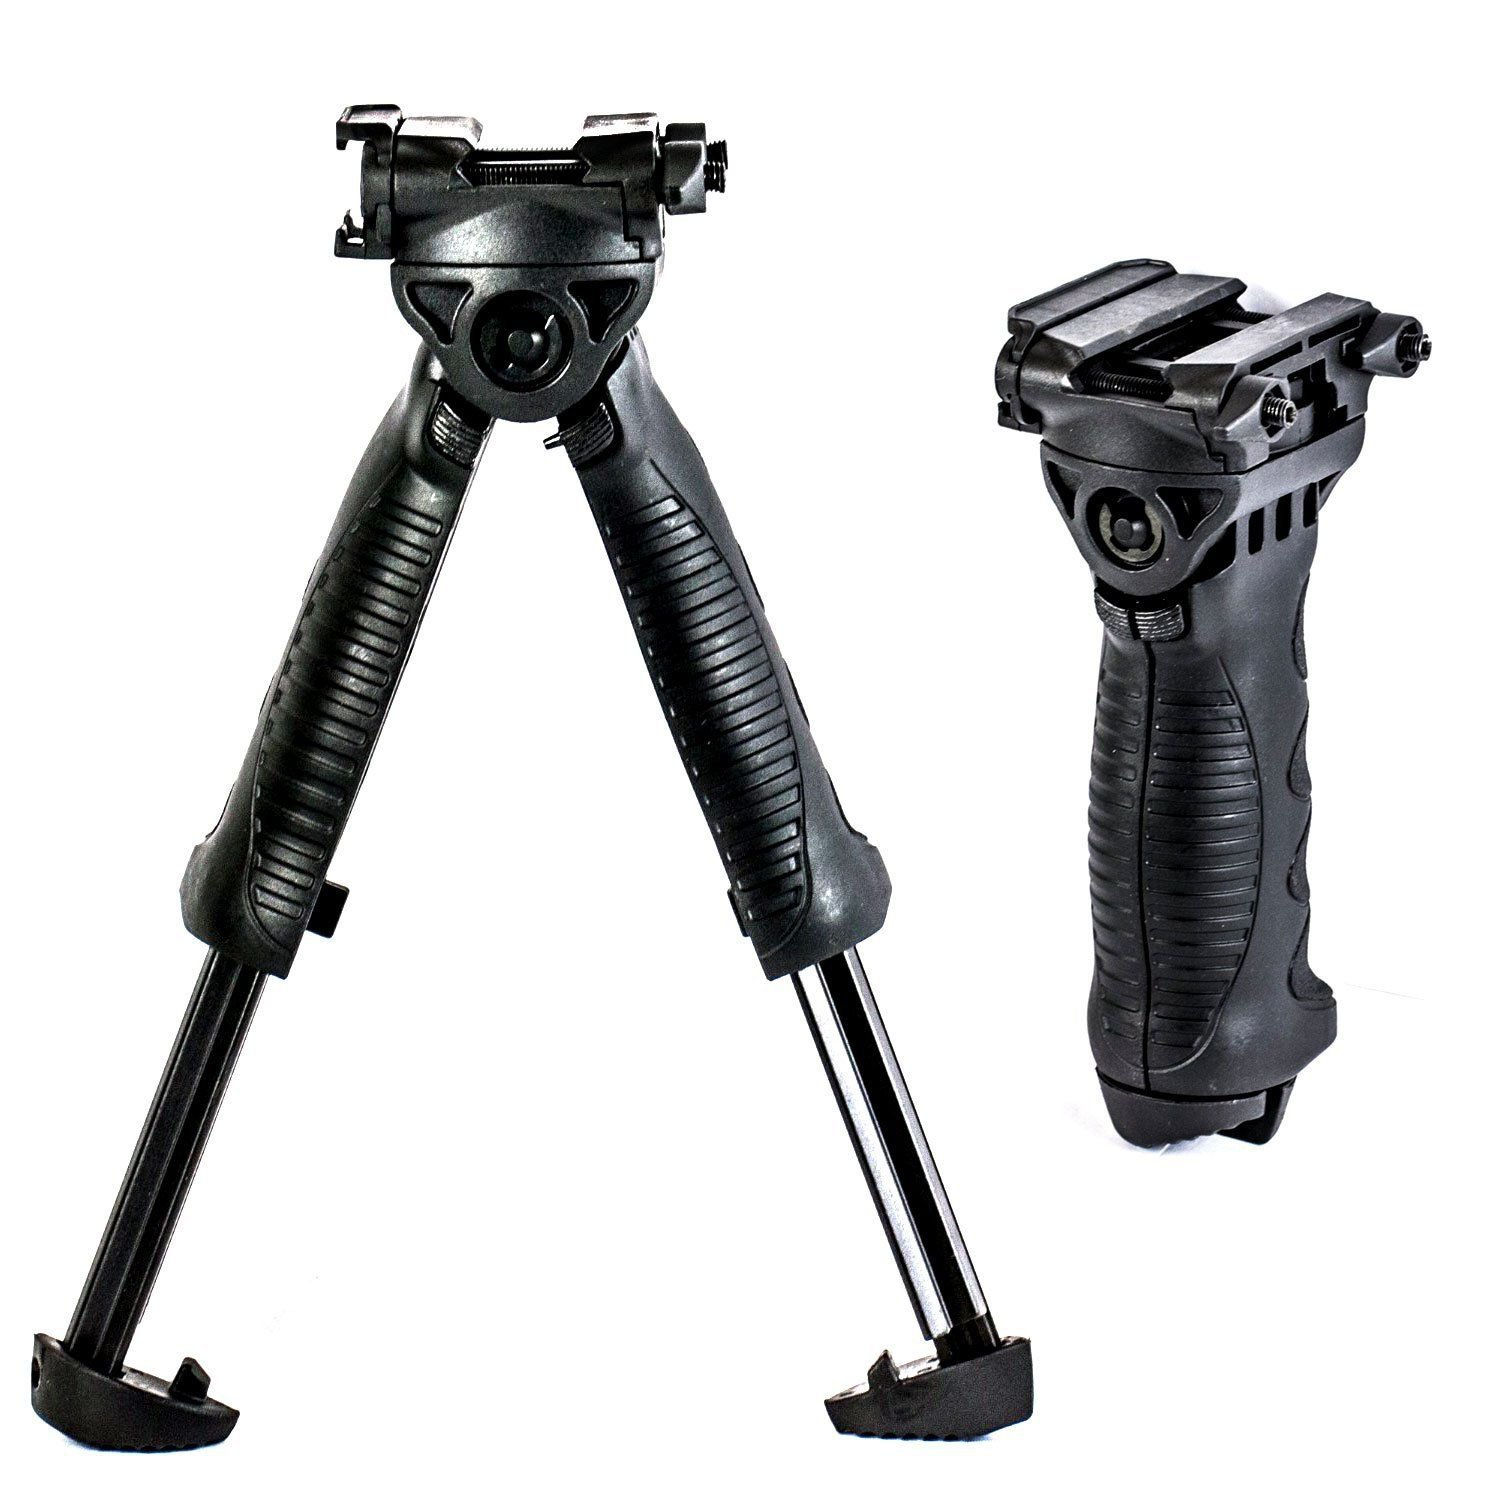 Tactical Bipod Grip Foldable Foregrip Swivel Rotating firearm Fits Picatinny Rail Rifle Mount